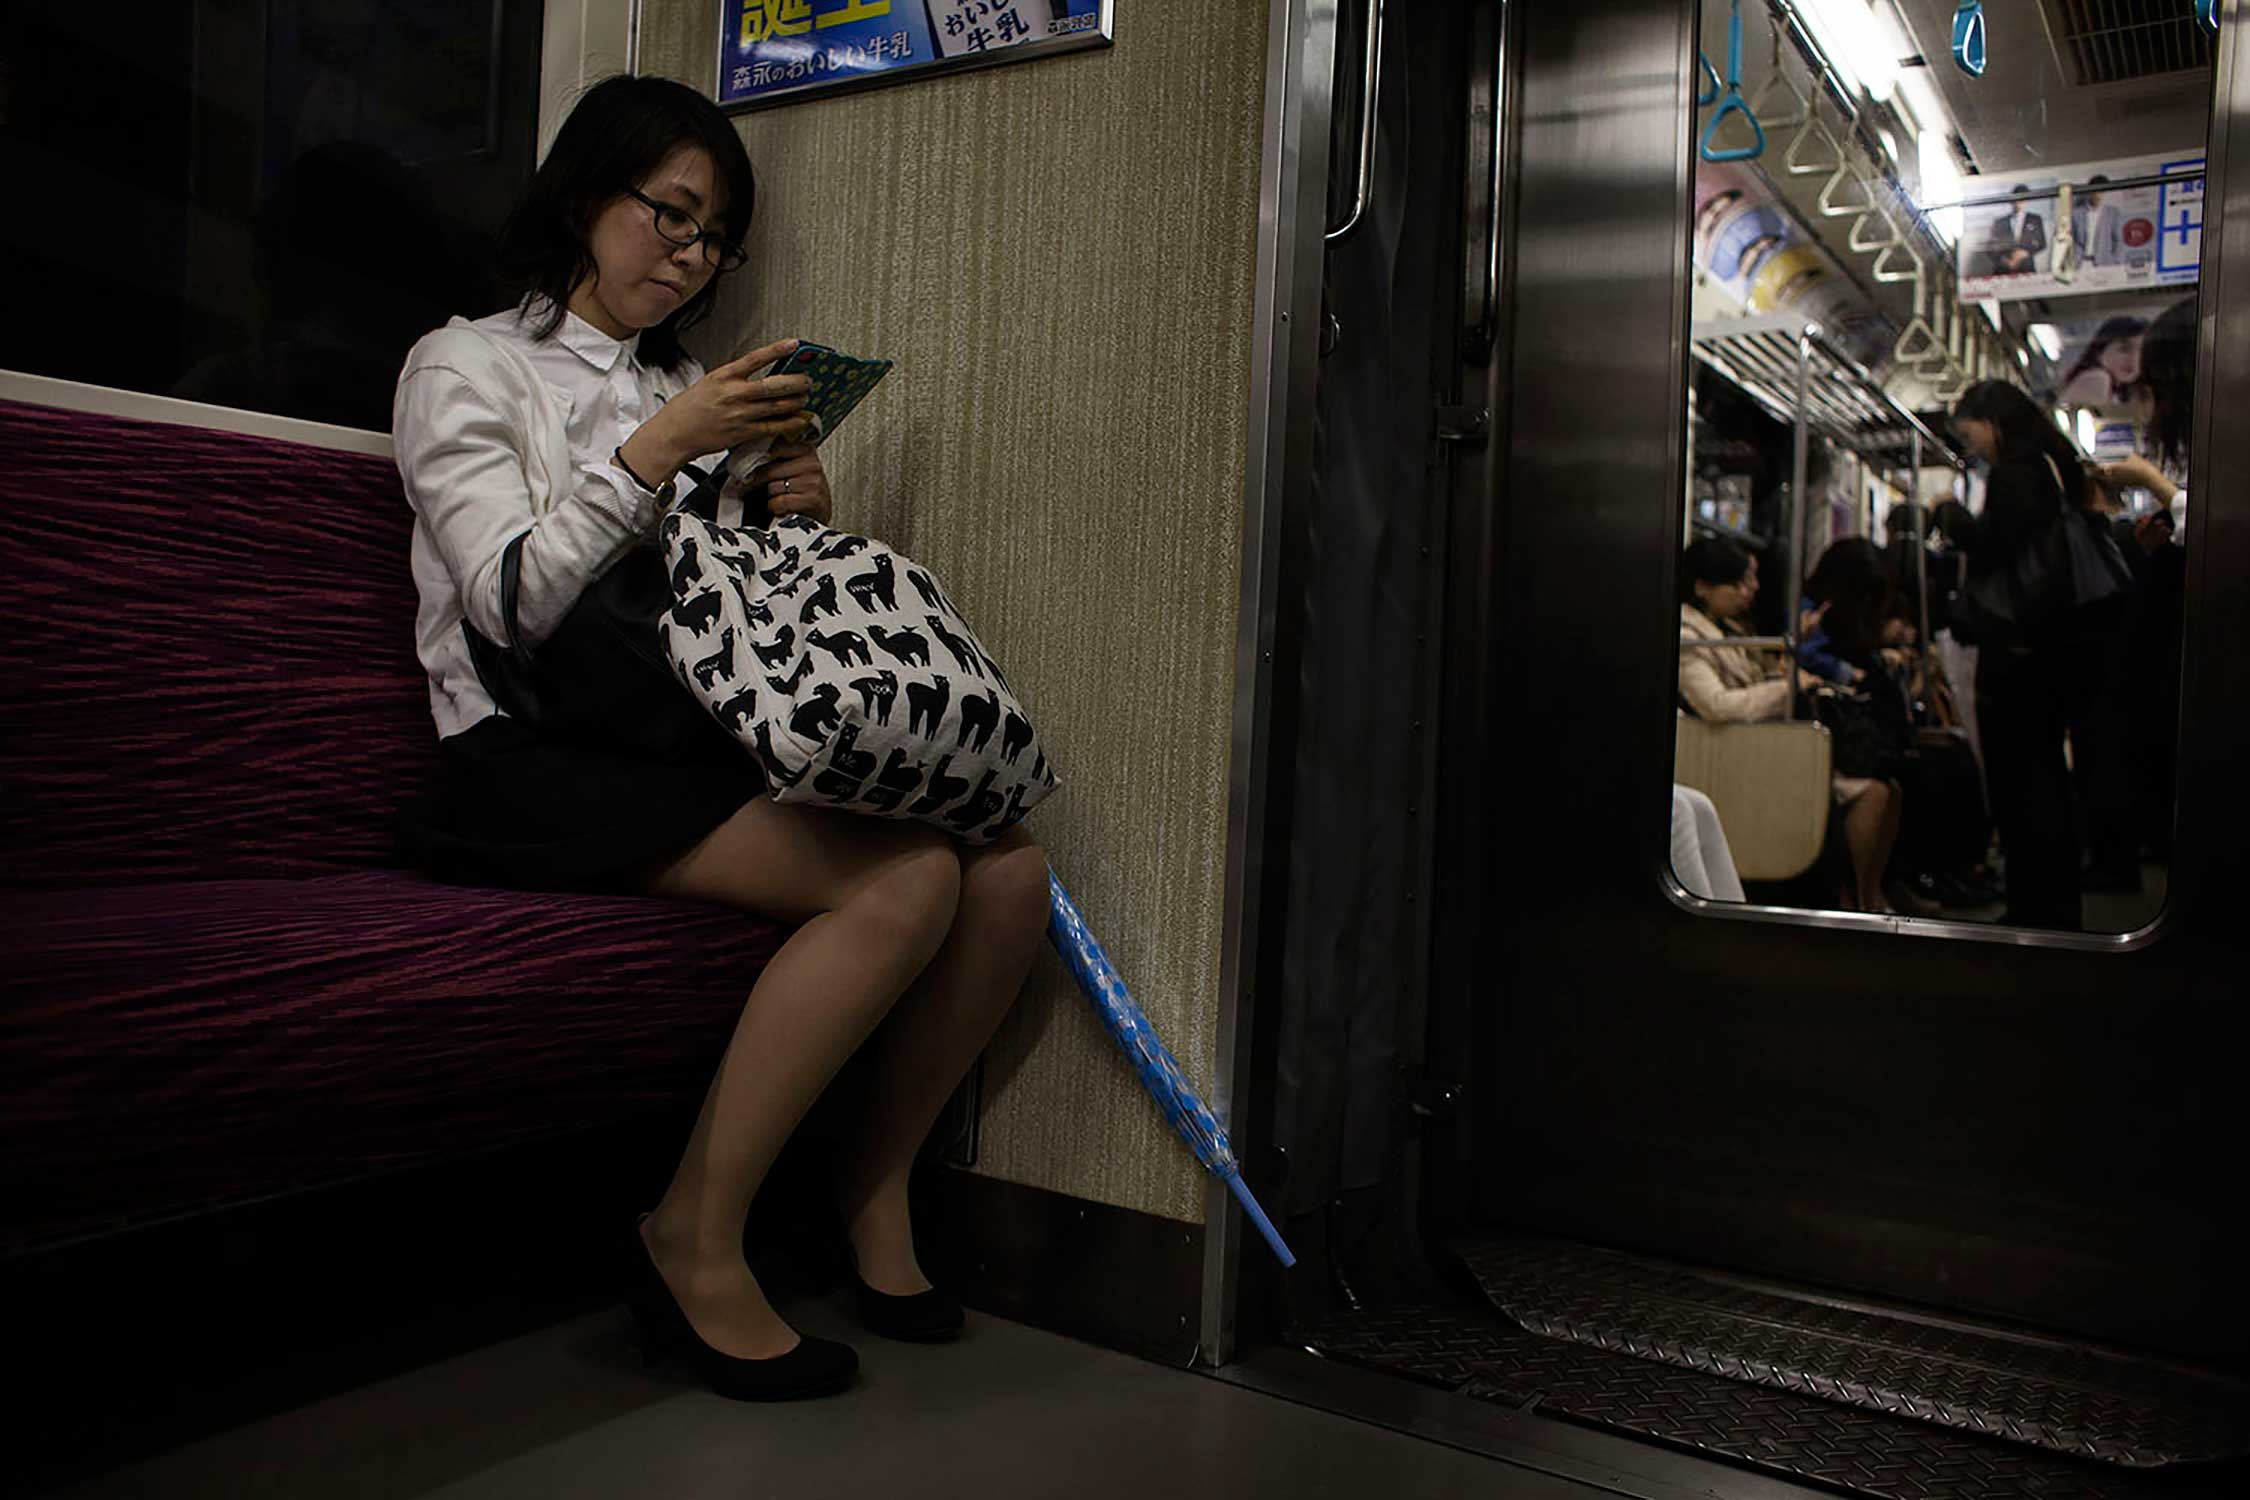 Hitomi often plays her romance simulation game while commuting to work with the Tokyo JR train line.